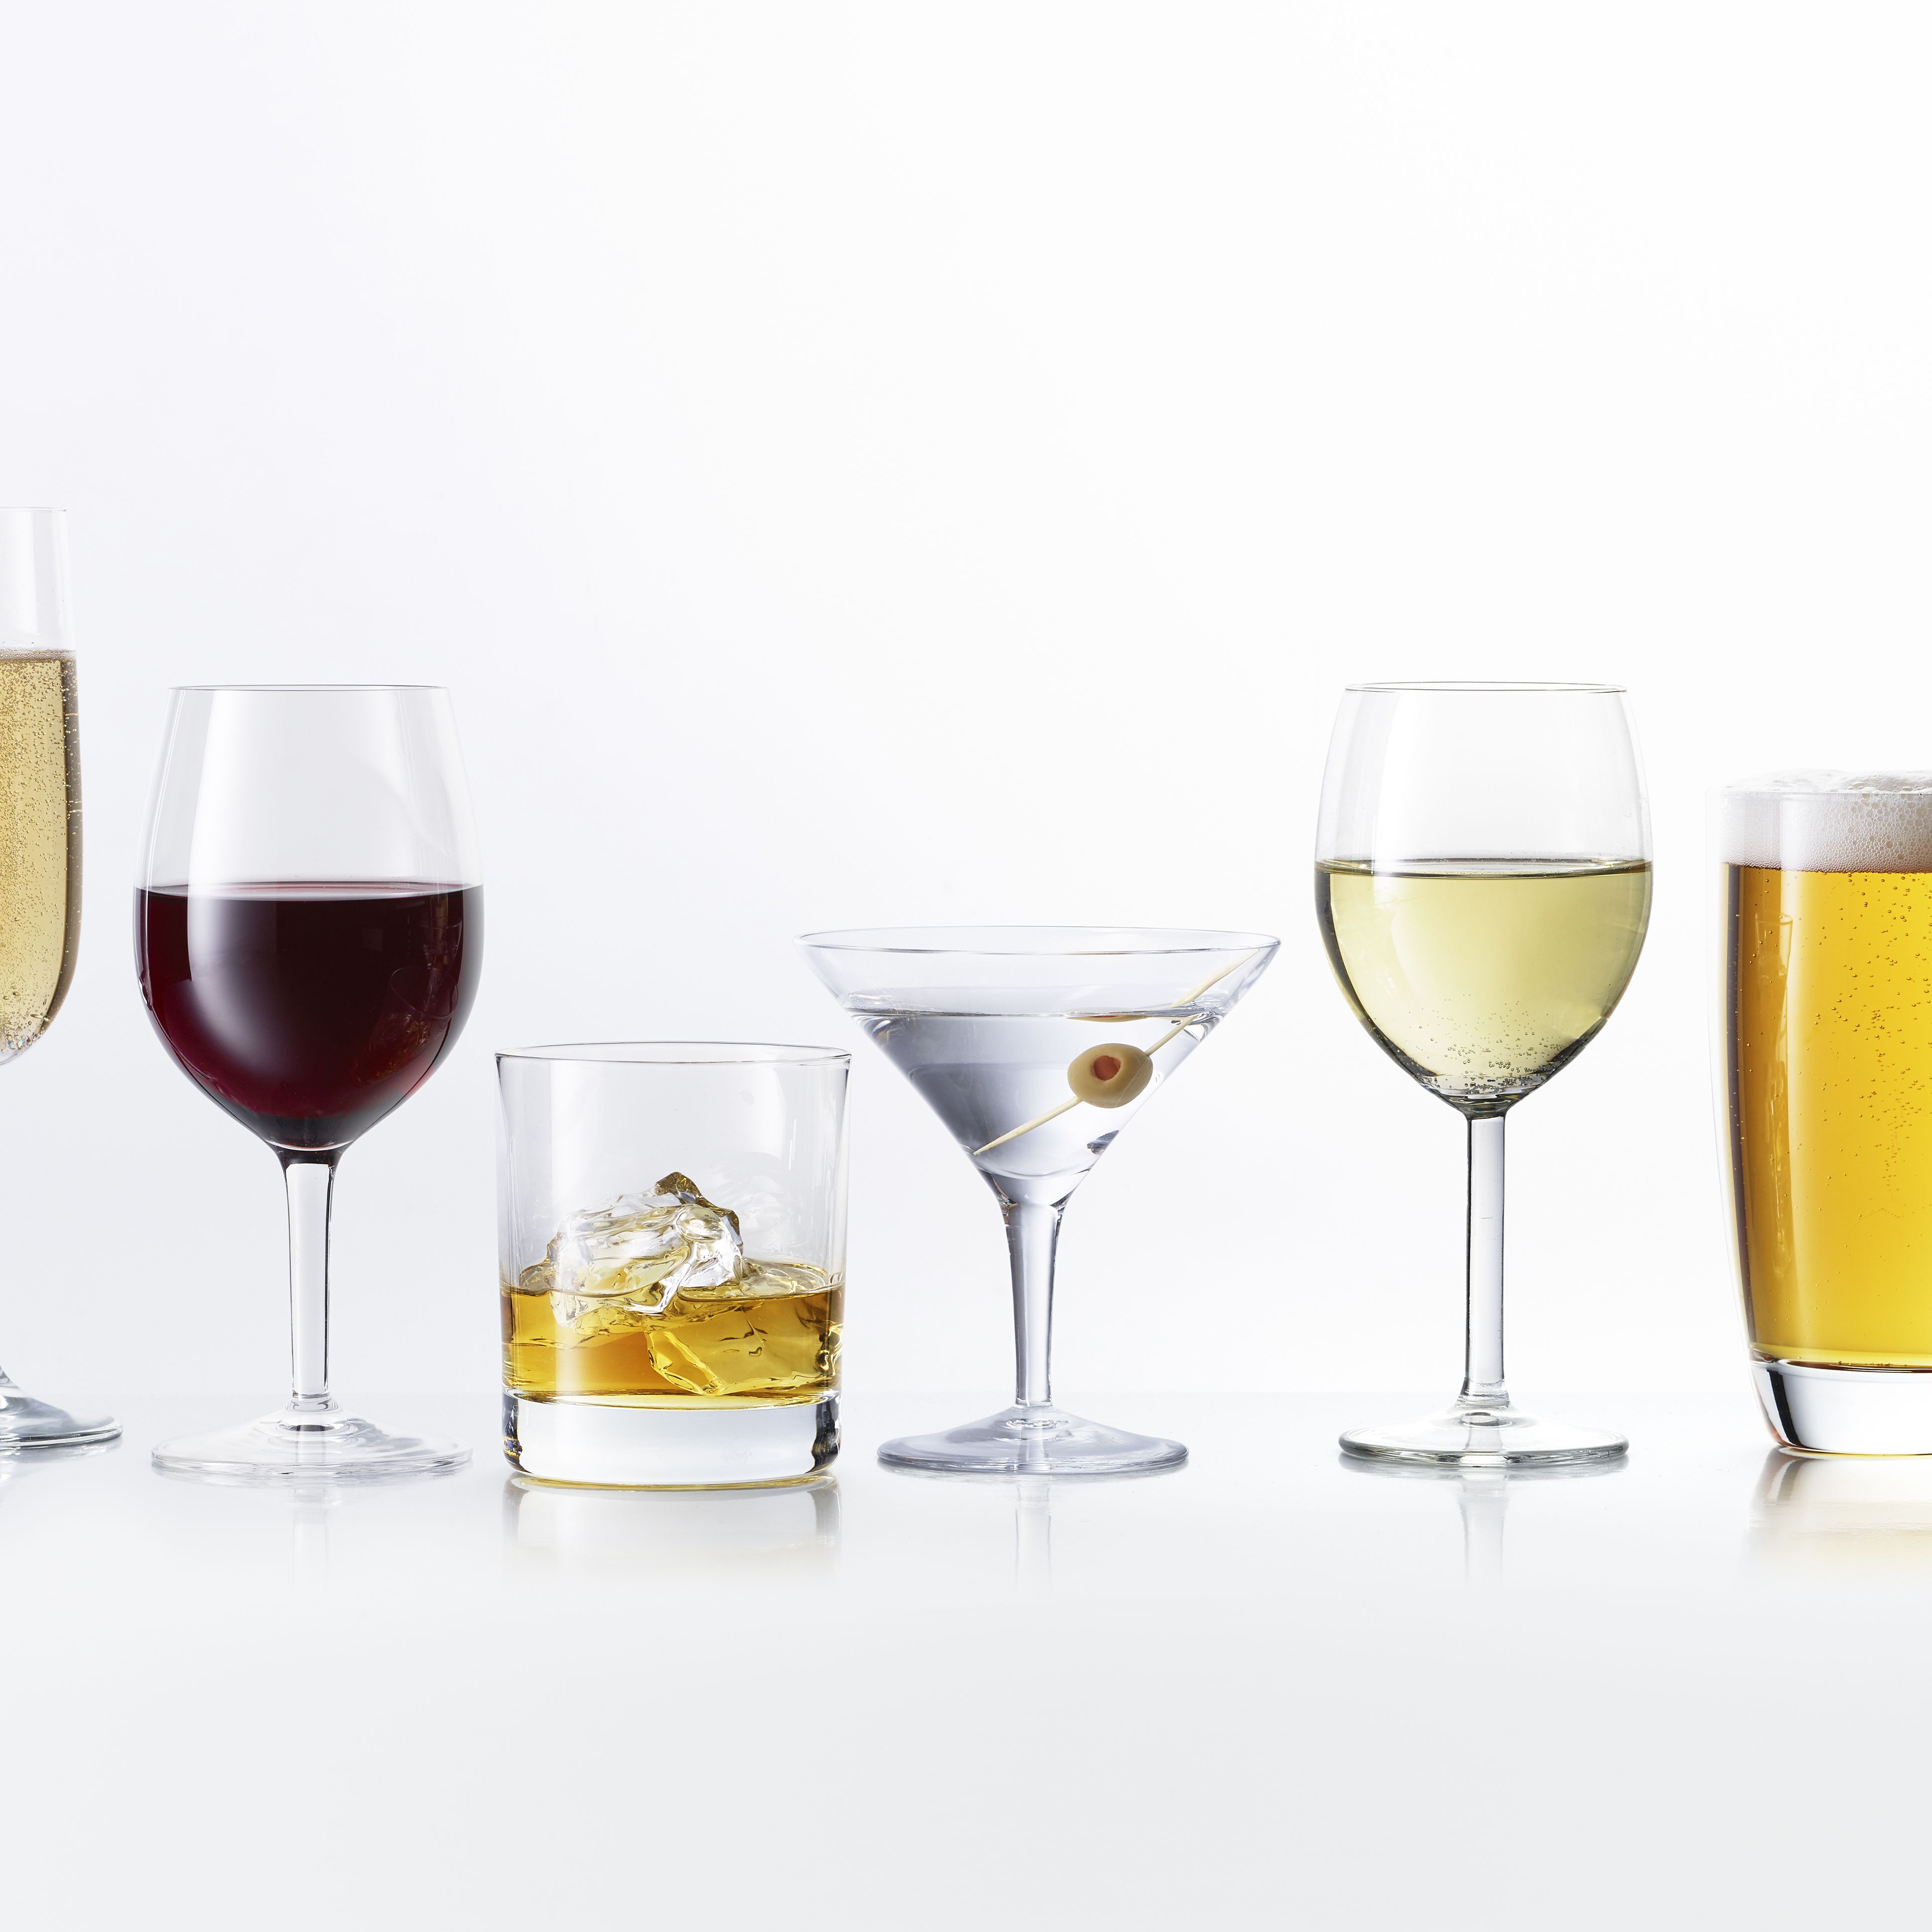 Alcohol Proof Definition and Examples